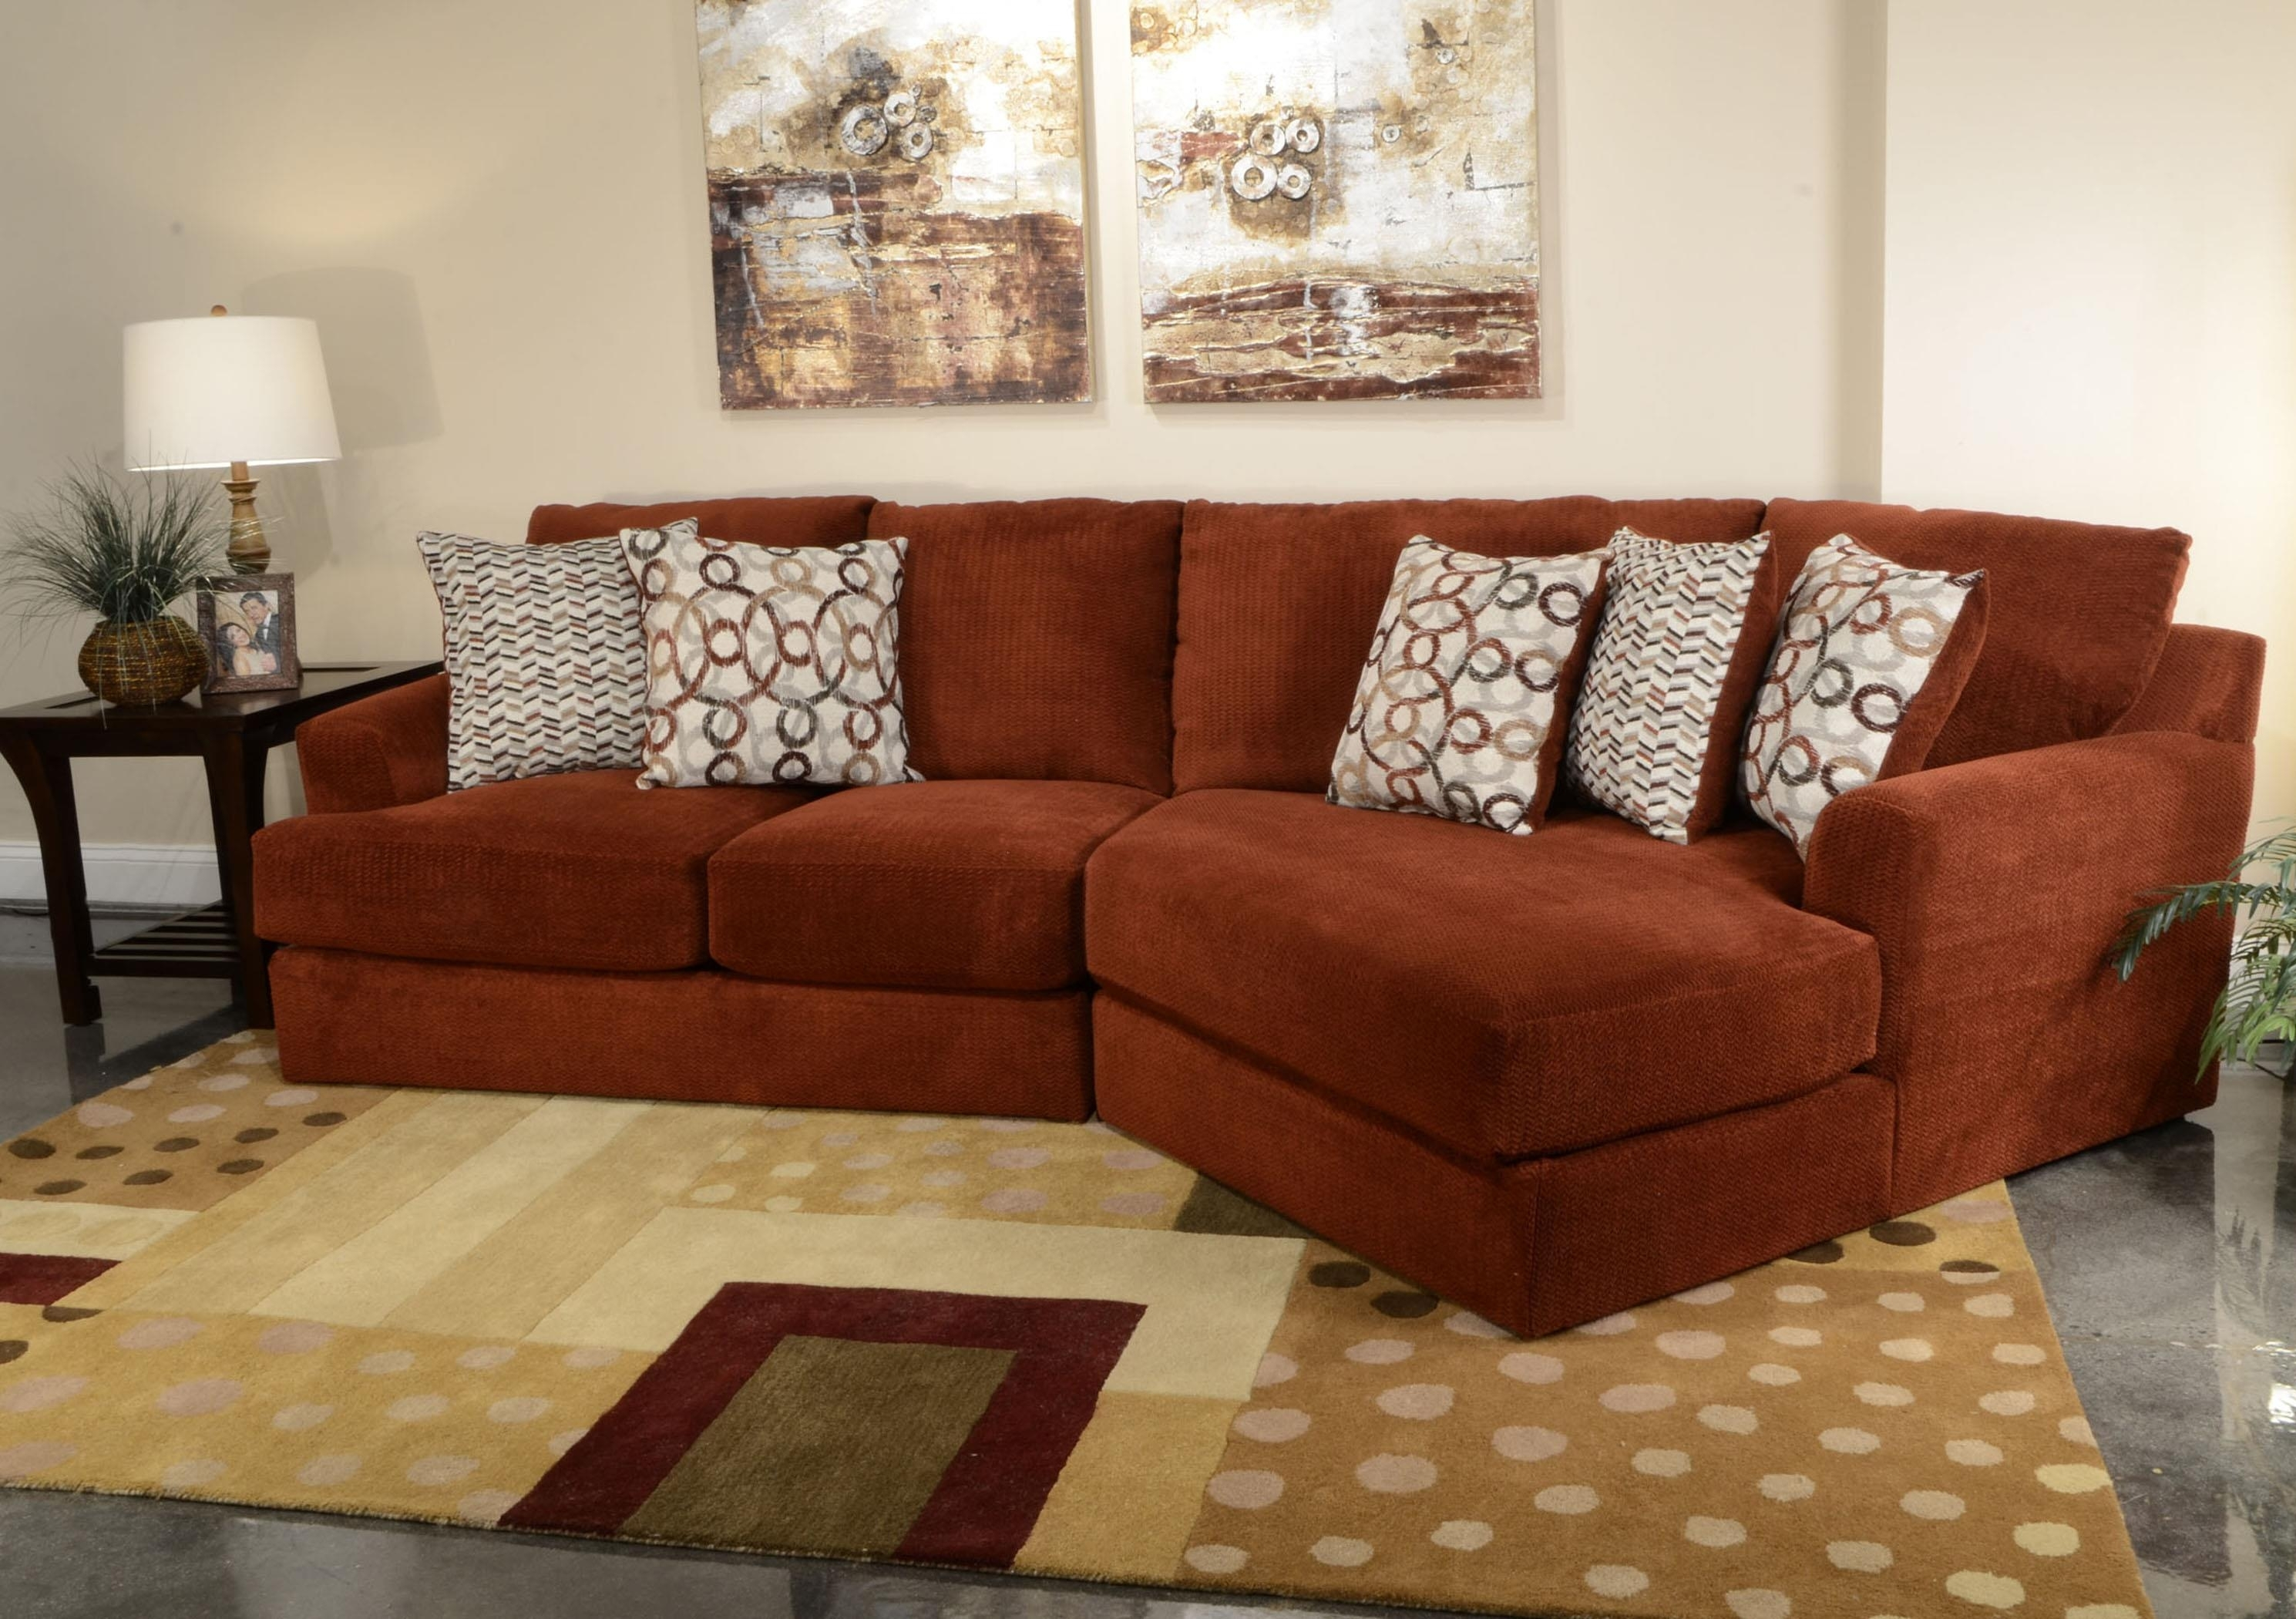 Small Three Seat Sectional Sofajackson Furniture | Wolf And With Jackson Tn Sectional Sofas (Image 8 of 10)